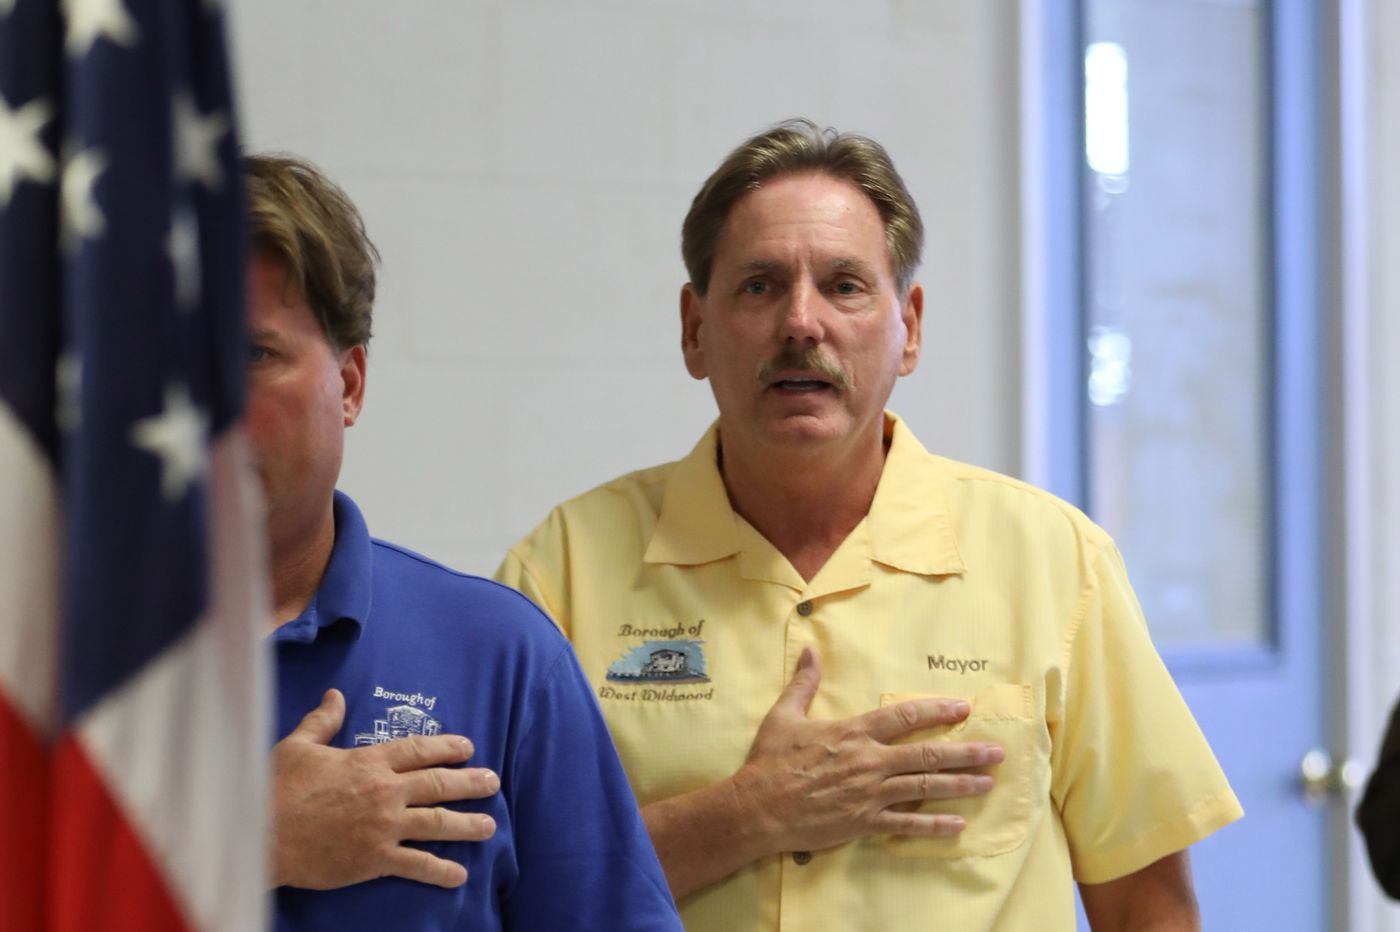 West Wildwood Mayor Christopher Fox: State ethics violations against me are 'a joke'